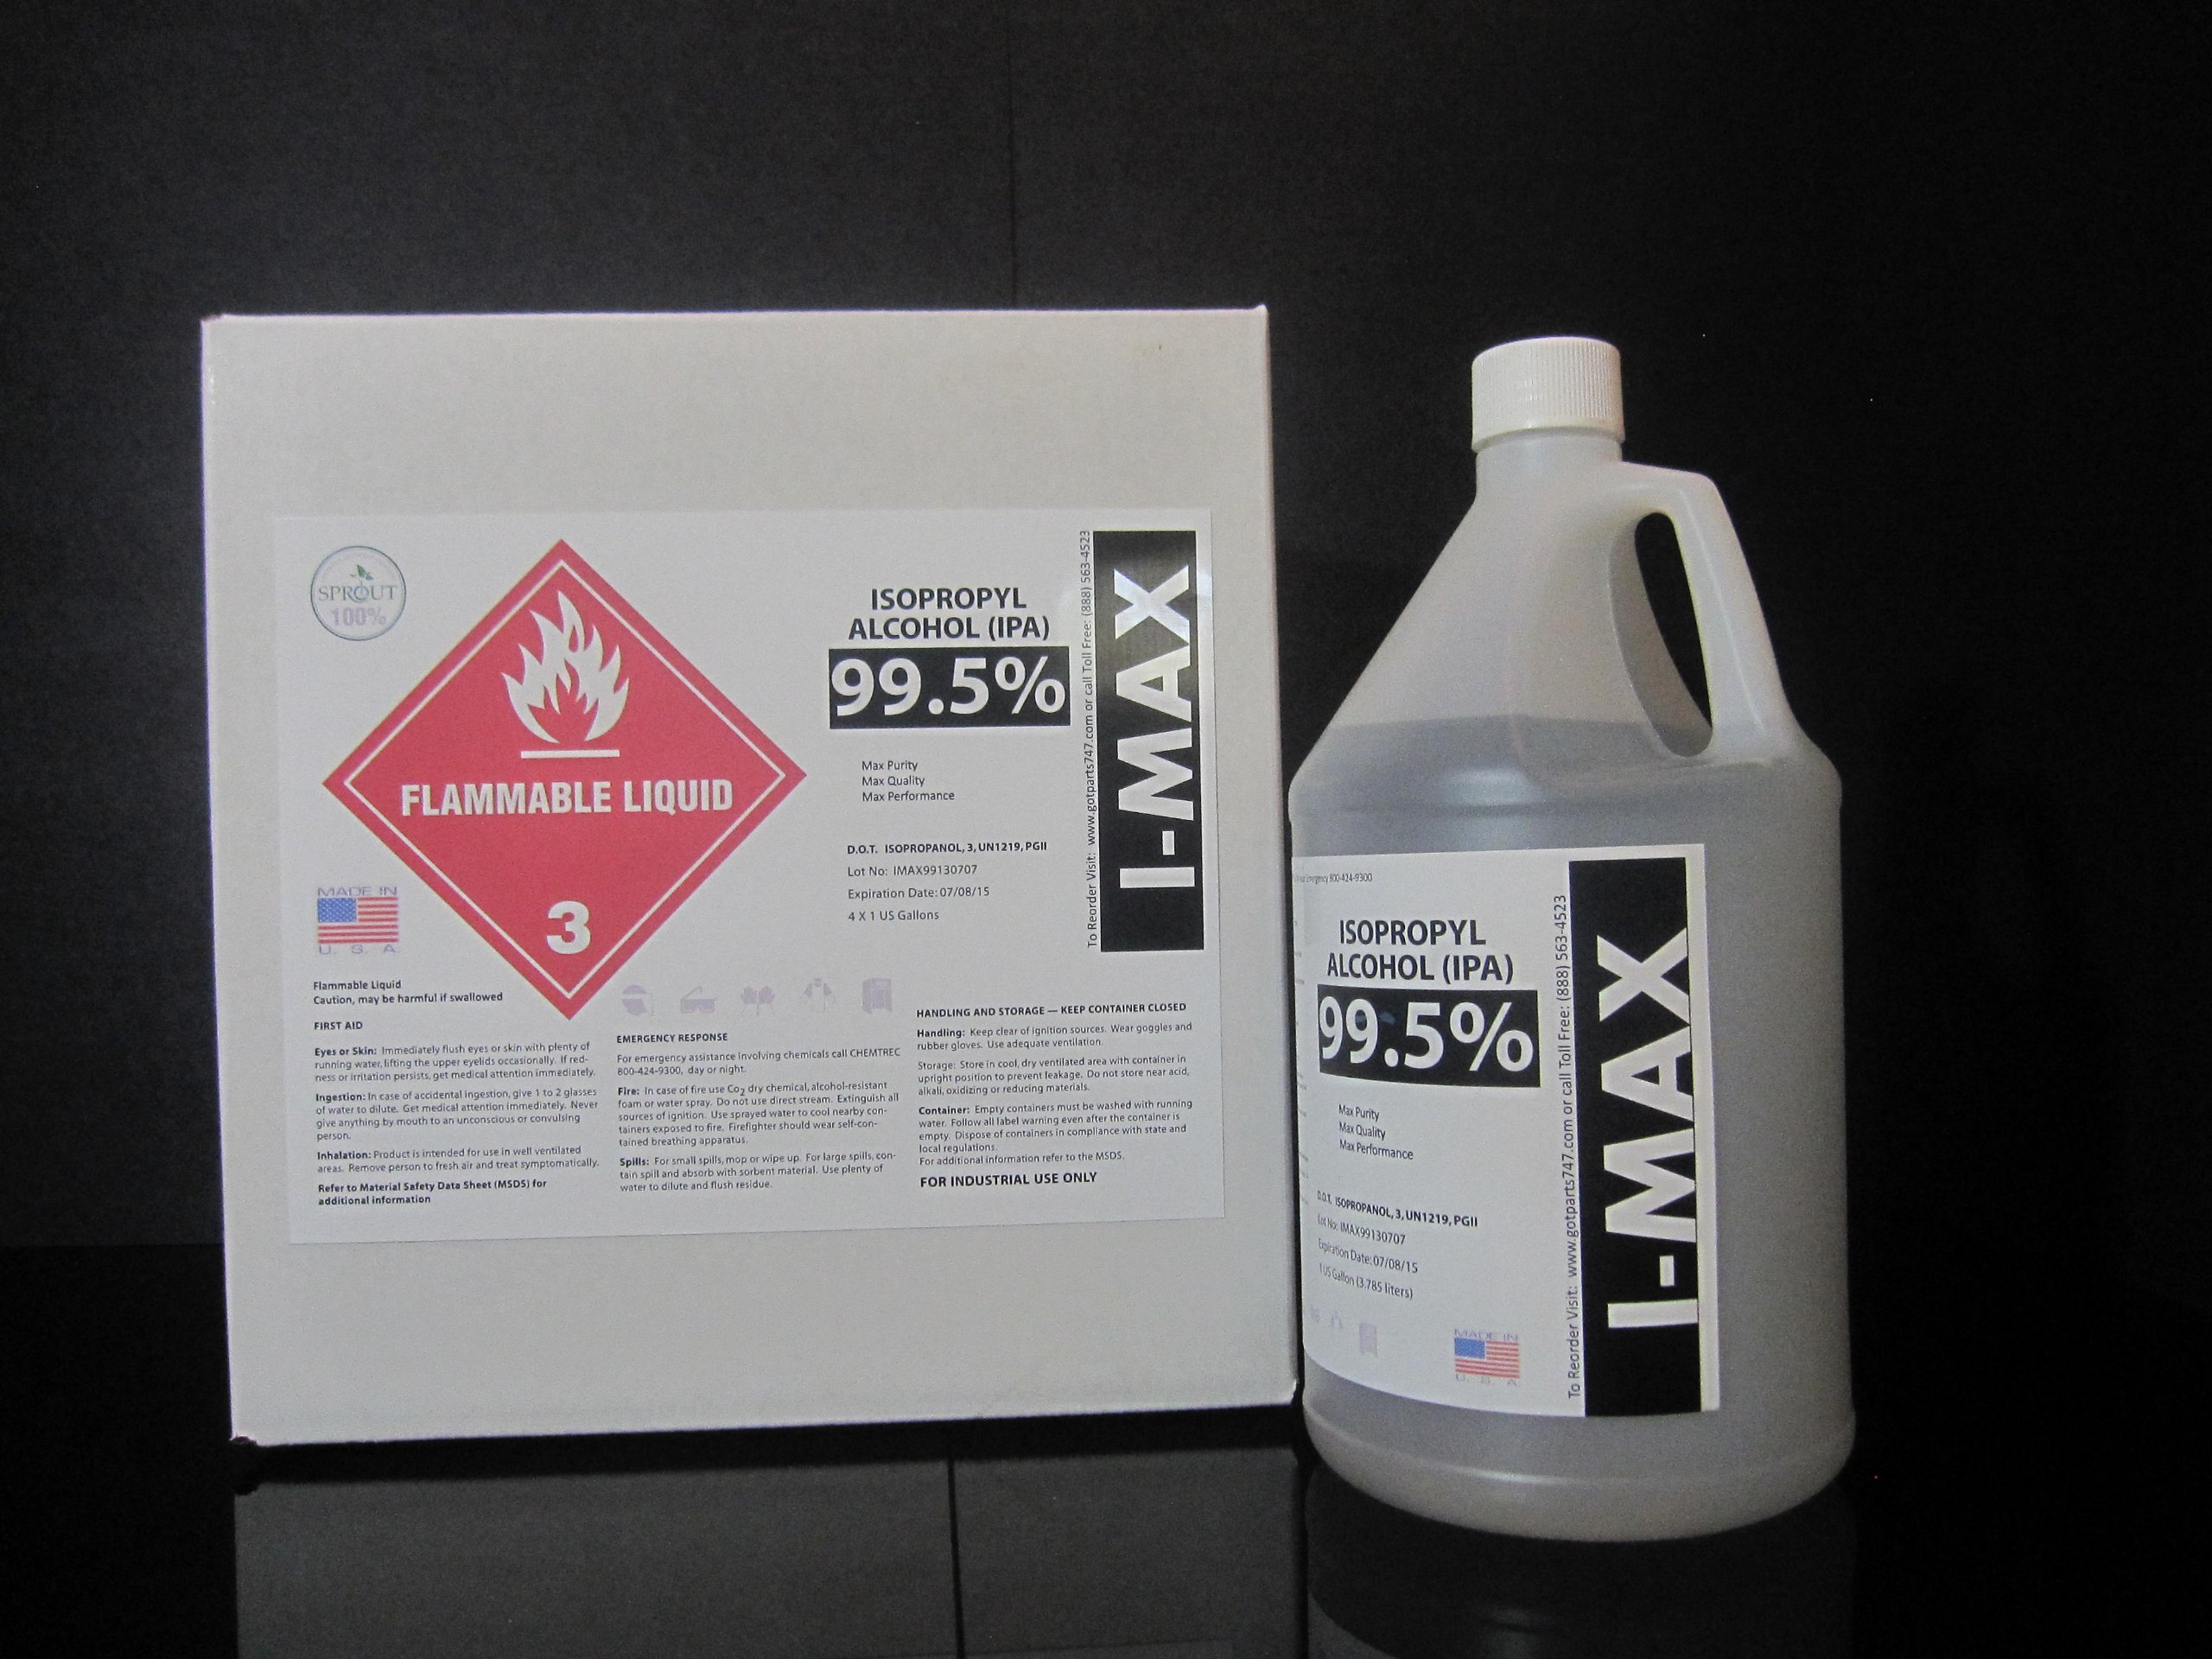 General Cleaning Alcohol - IPA 99.5% 4 GALLONS - HIGH PURITY (Best quality and price online)